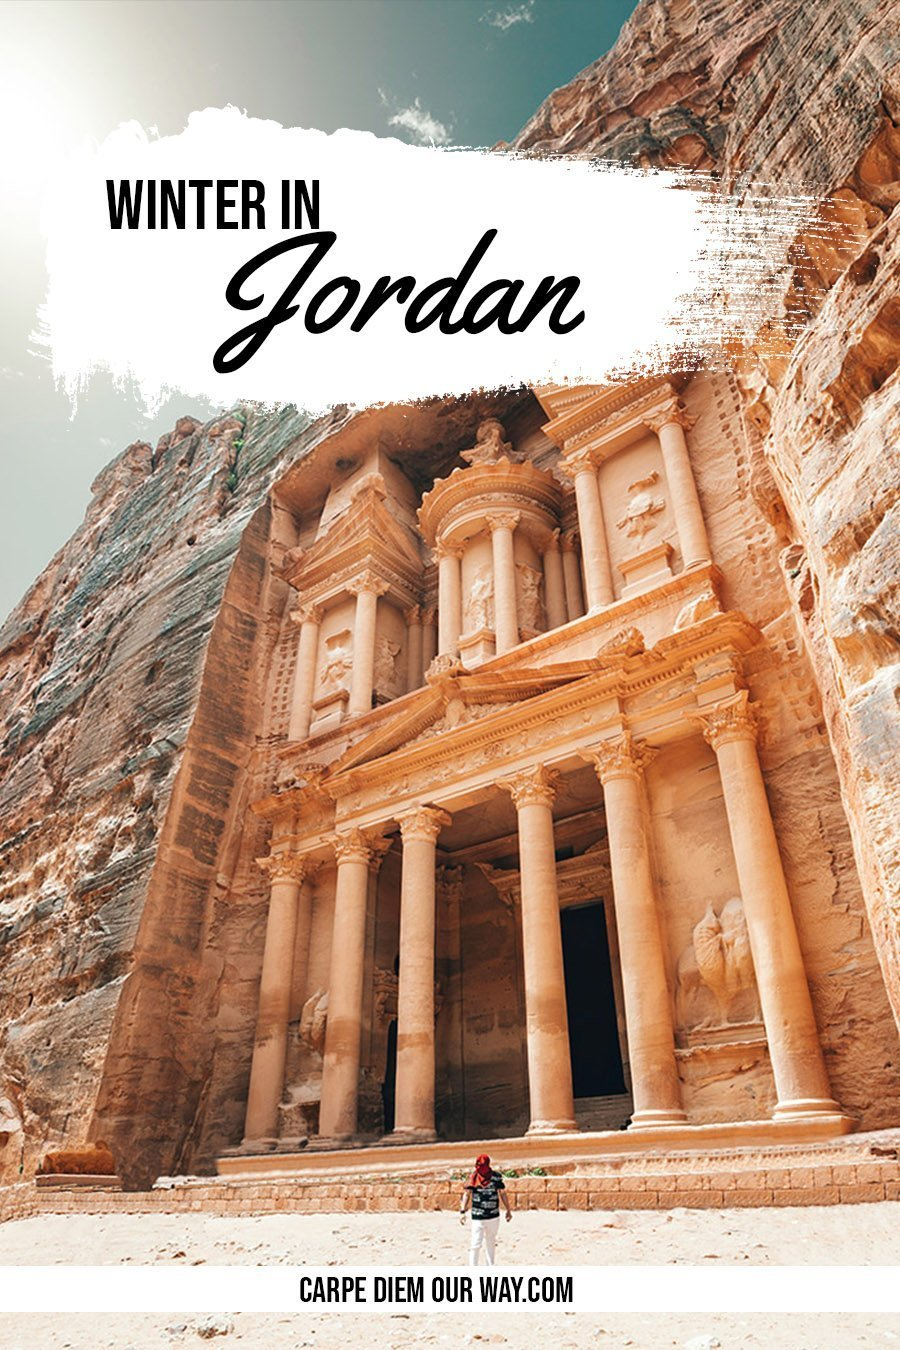 Jordan in Winter